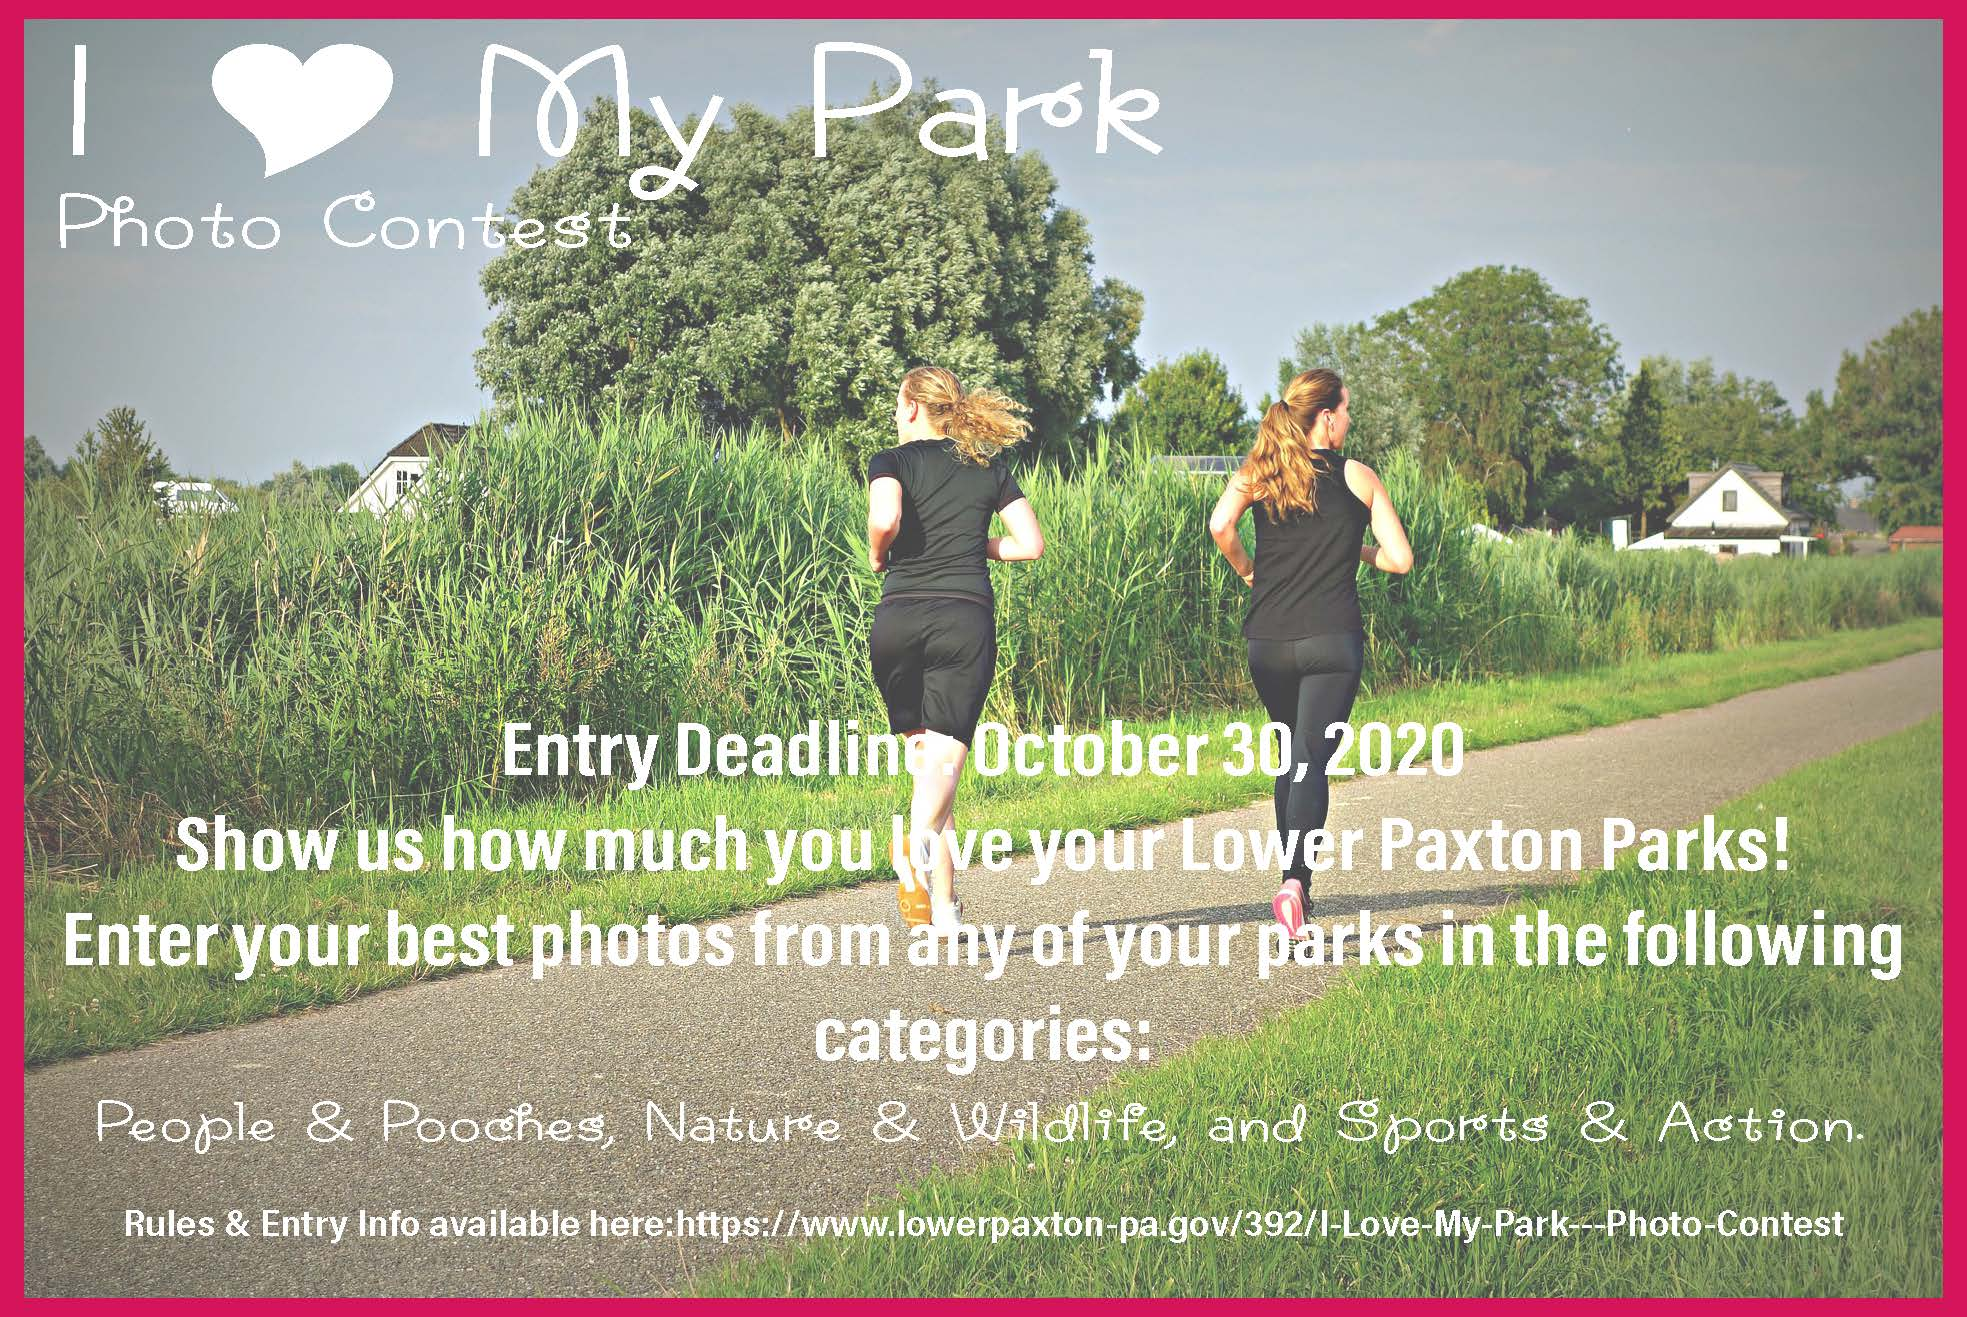 I love my park photo contest